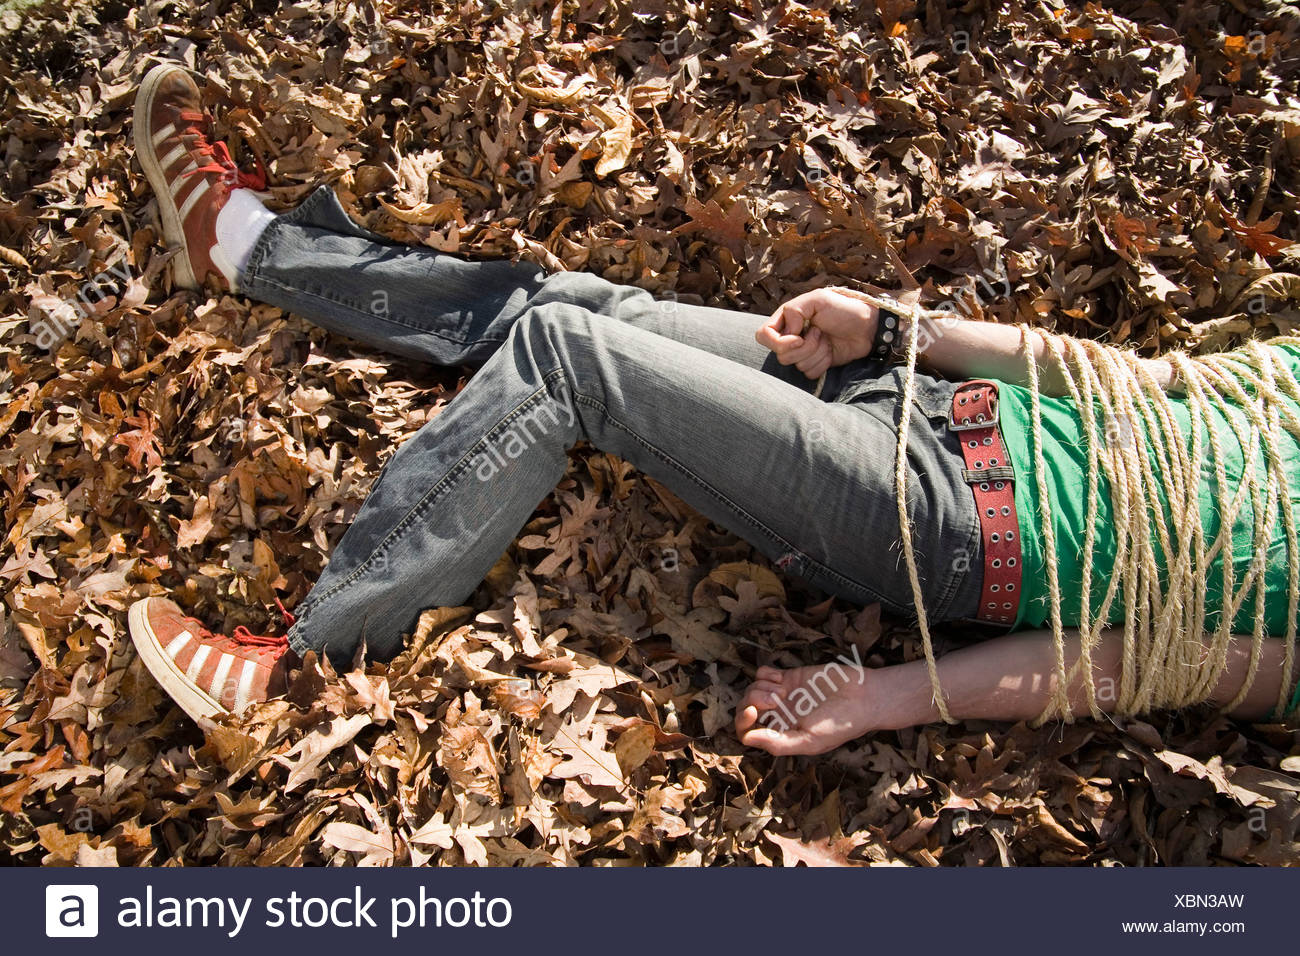 Man lying in a pile of autumn leaves bound in rope - Stock Image